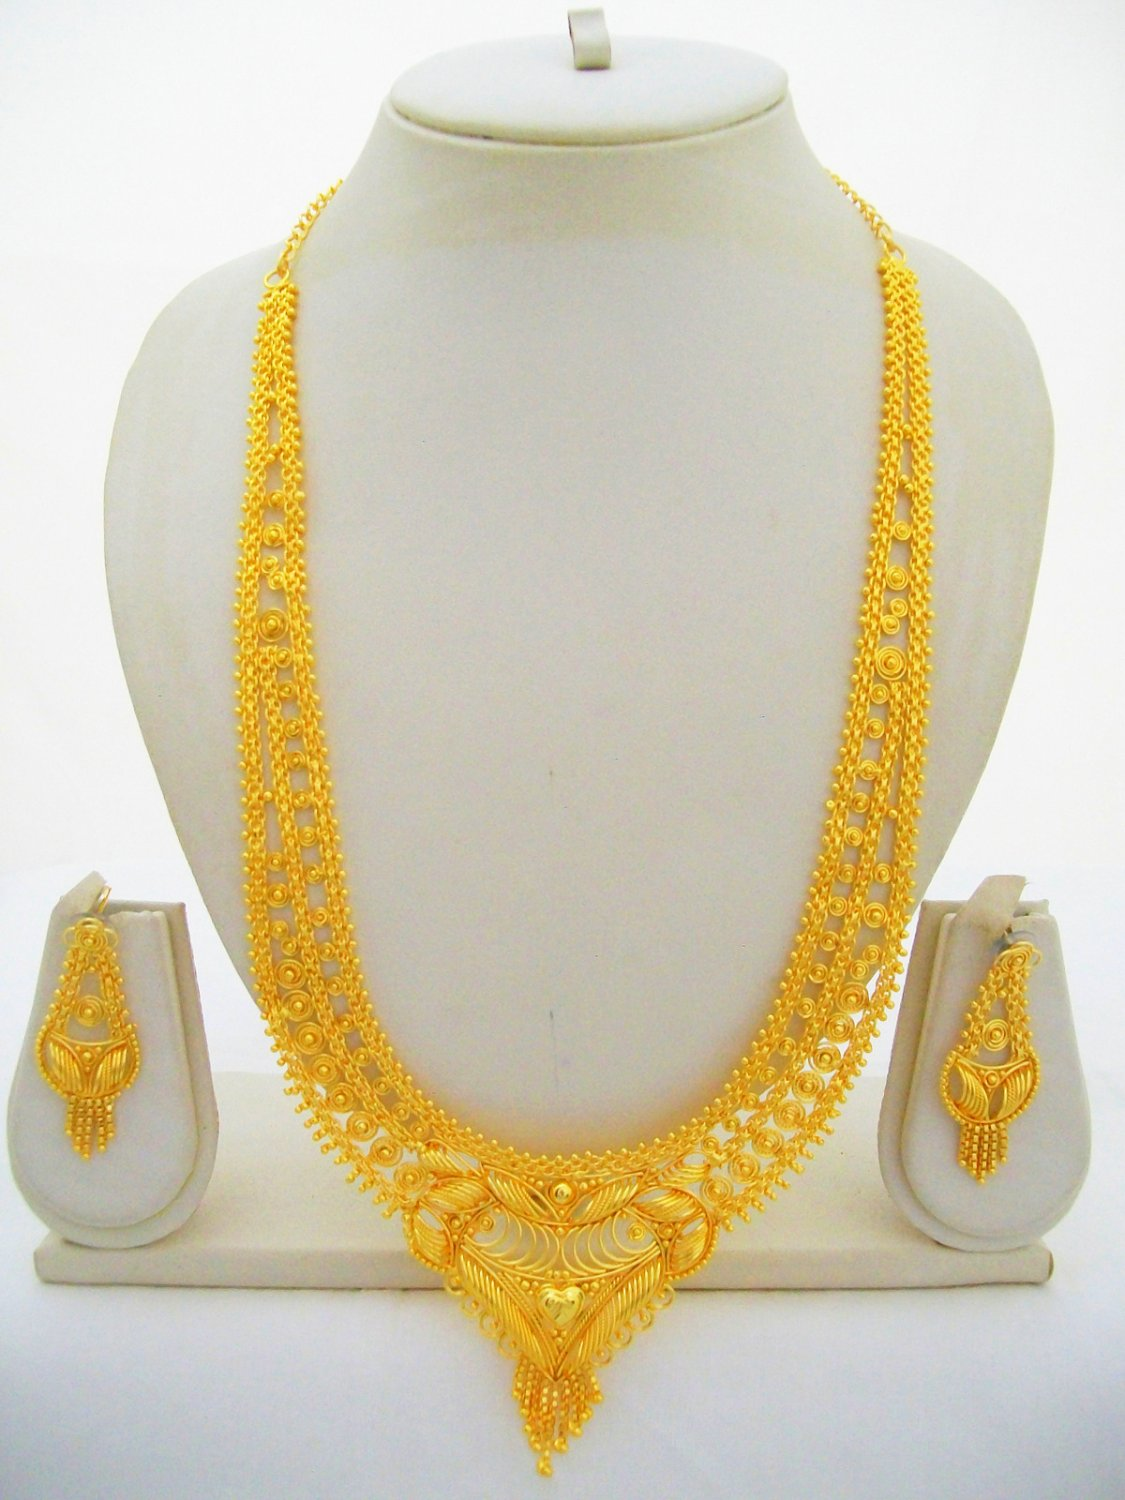 22k Gold Plated Rani Haar Indian Wedding Long Necklace Jewelry Set